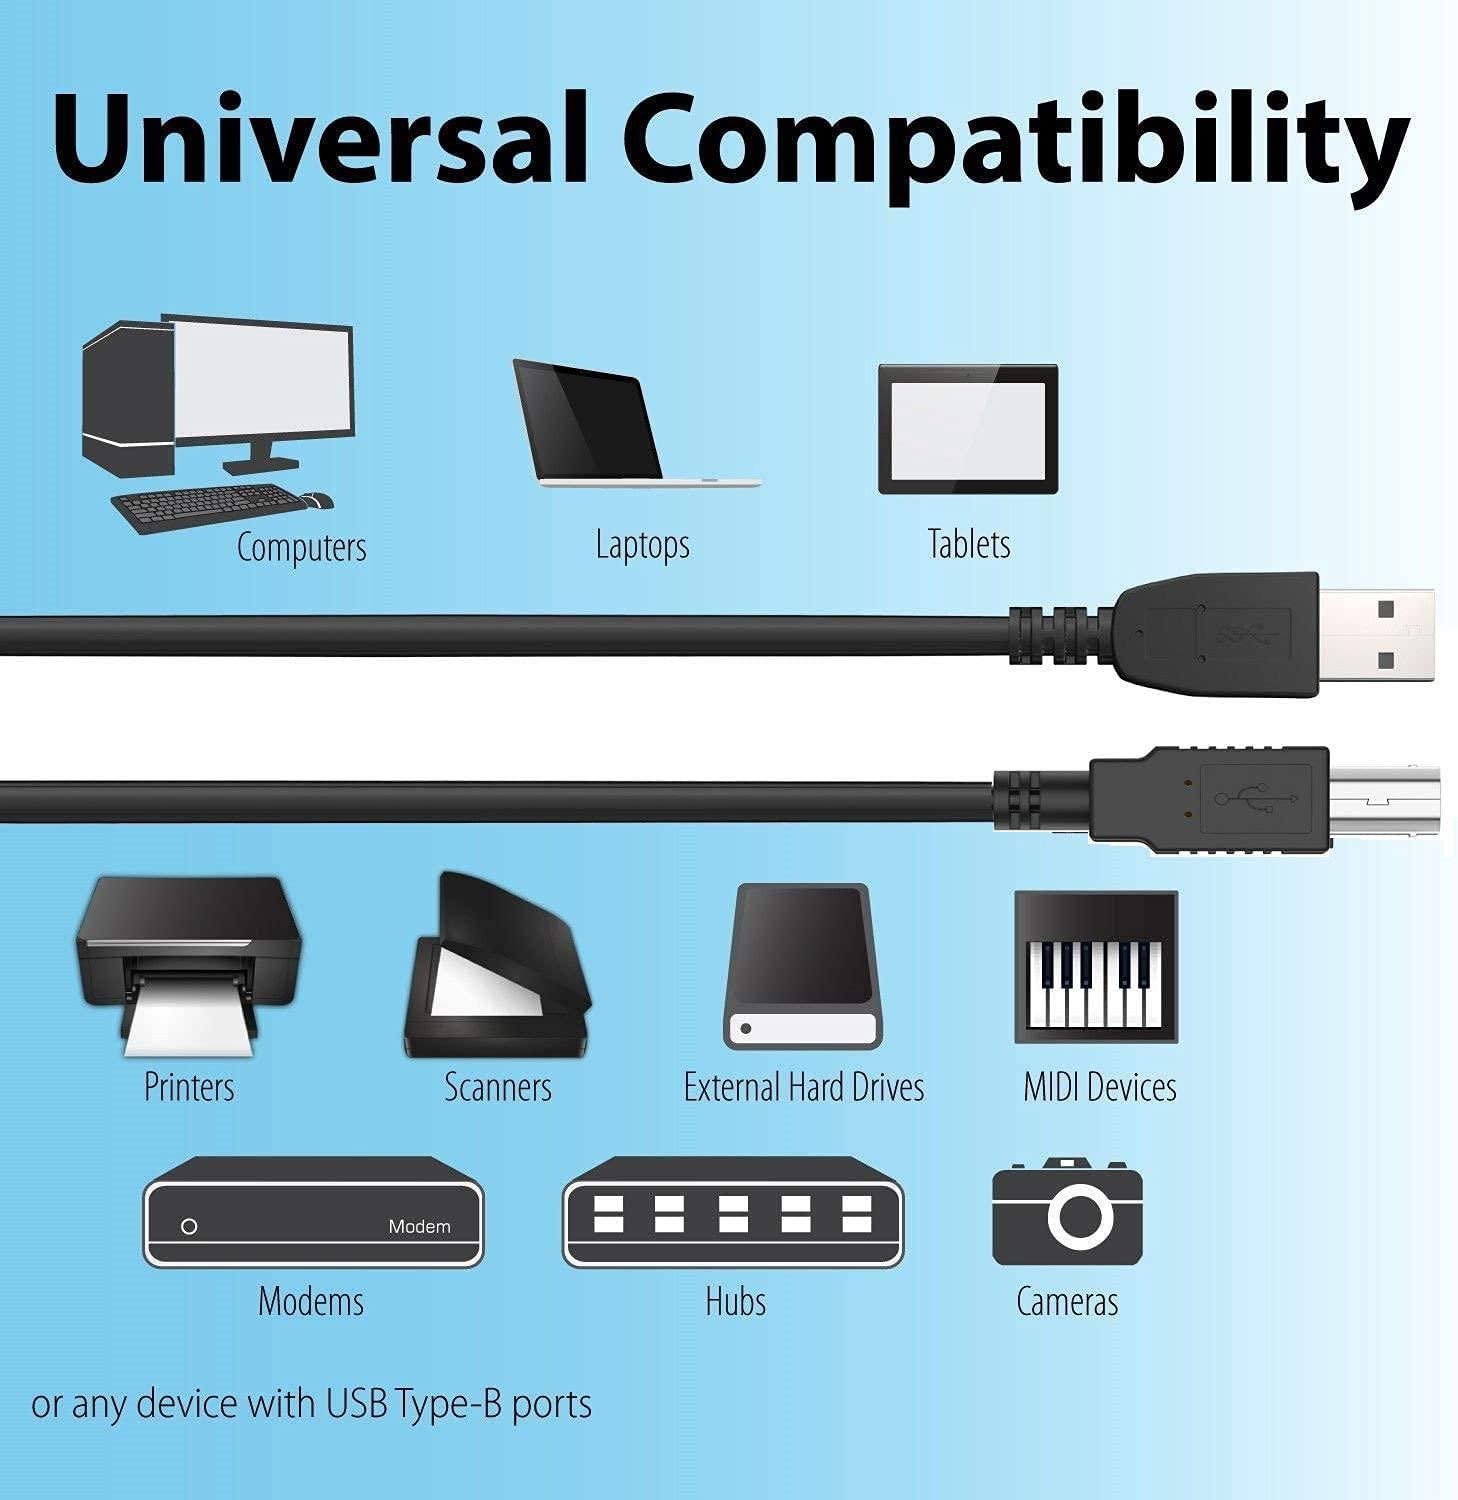 BRST USB Cable Laptop PC Data Sync Cord Lead for Epson Perfection V850 Pro Flatbed Scanner B11B224201, B11B223201 Perfection V800 Flatbed Scanner